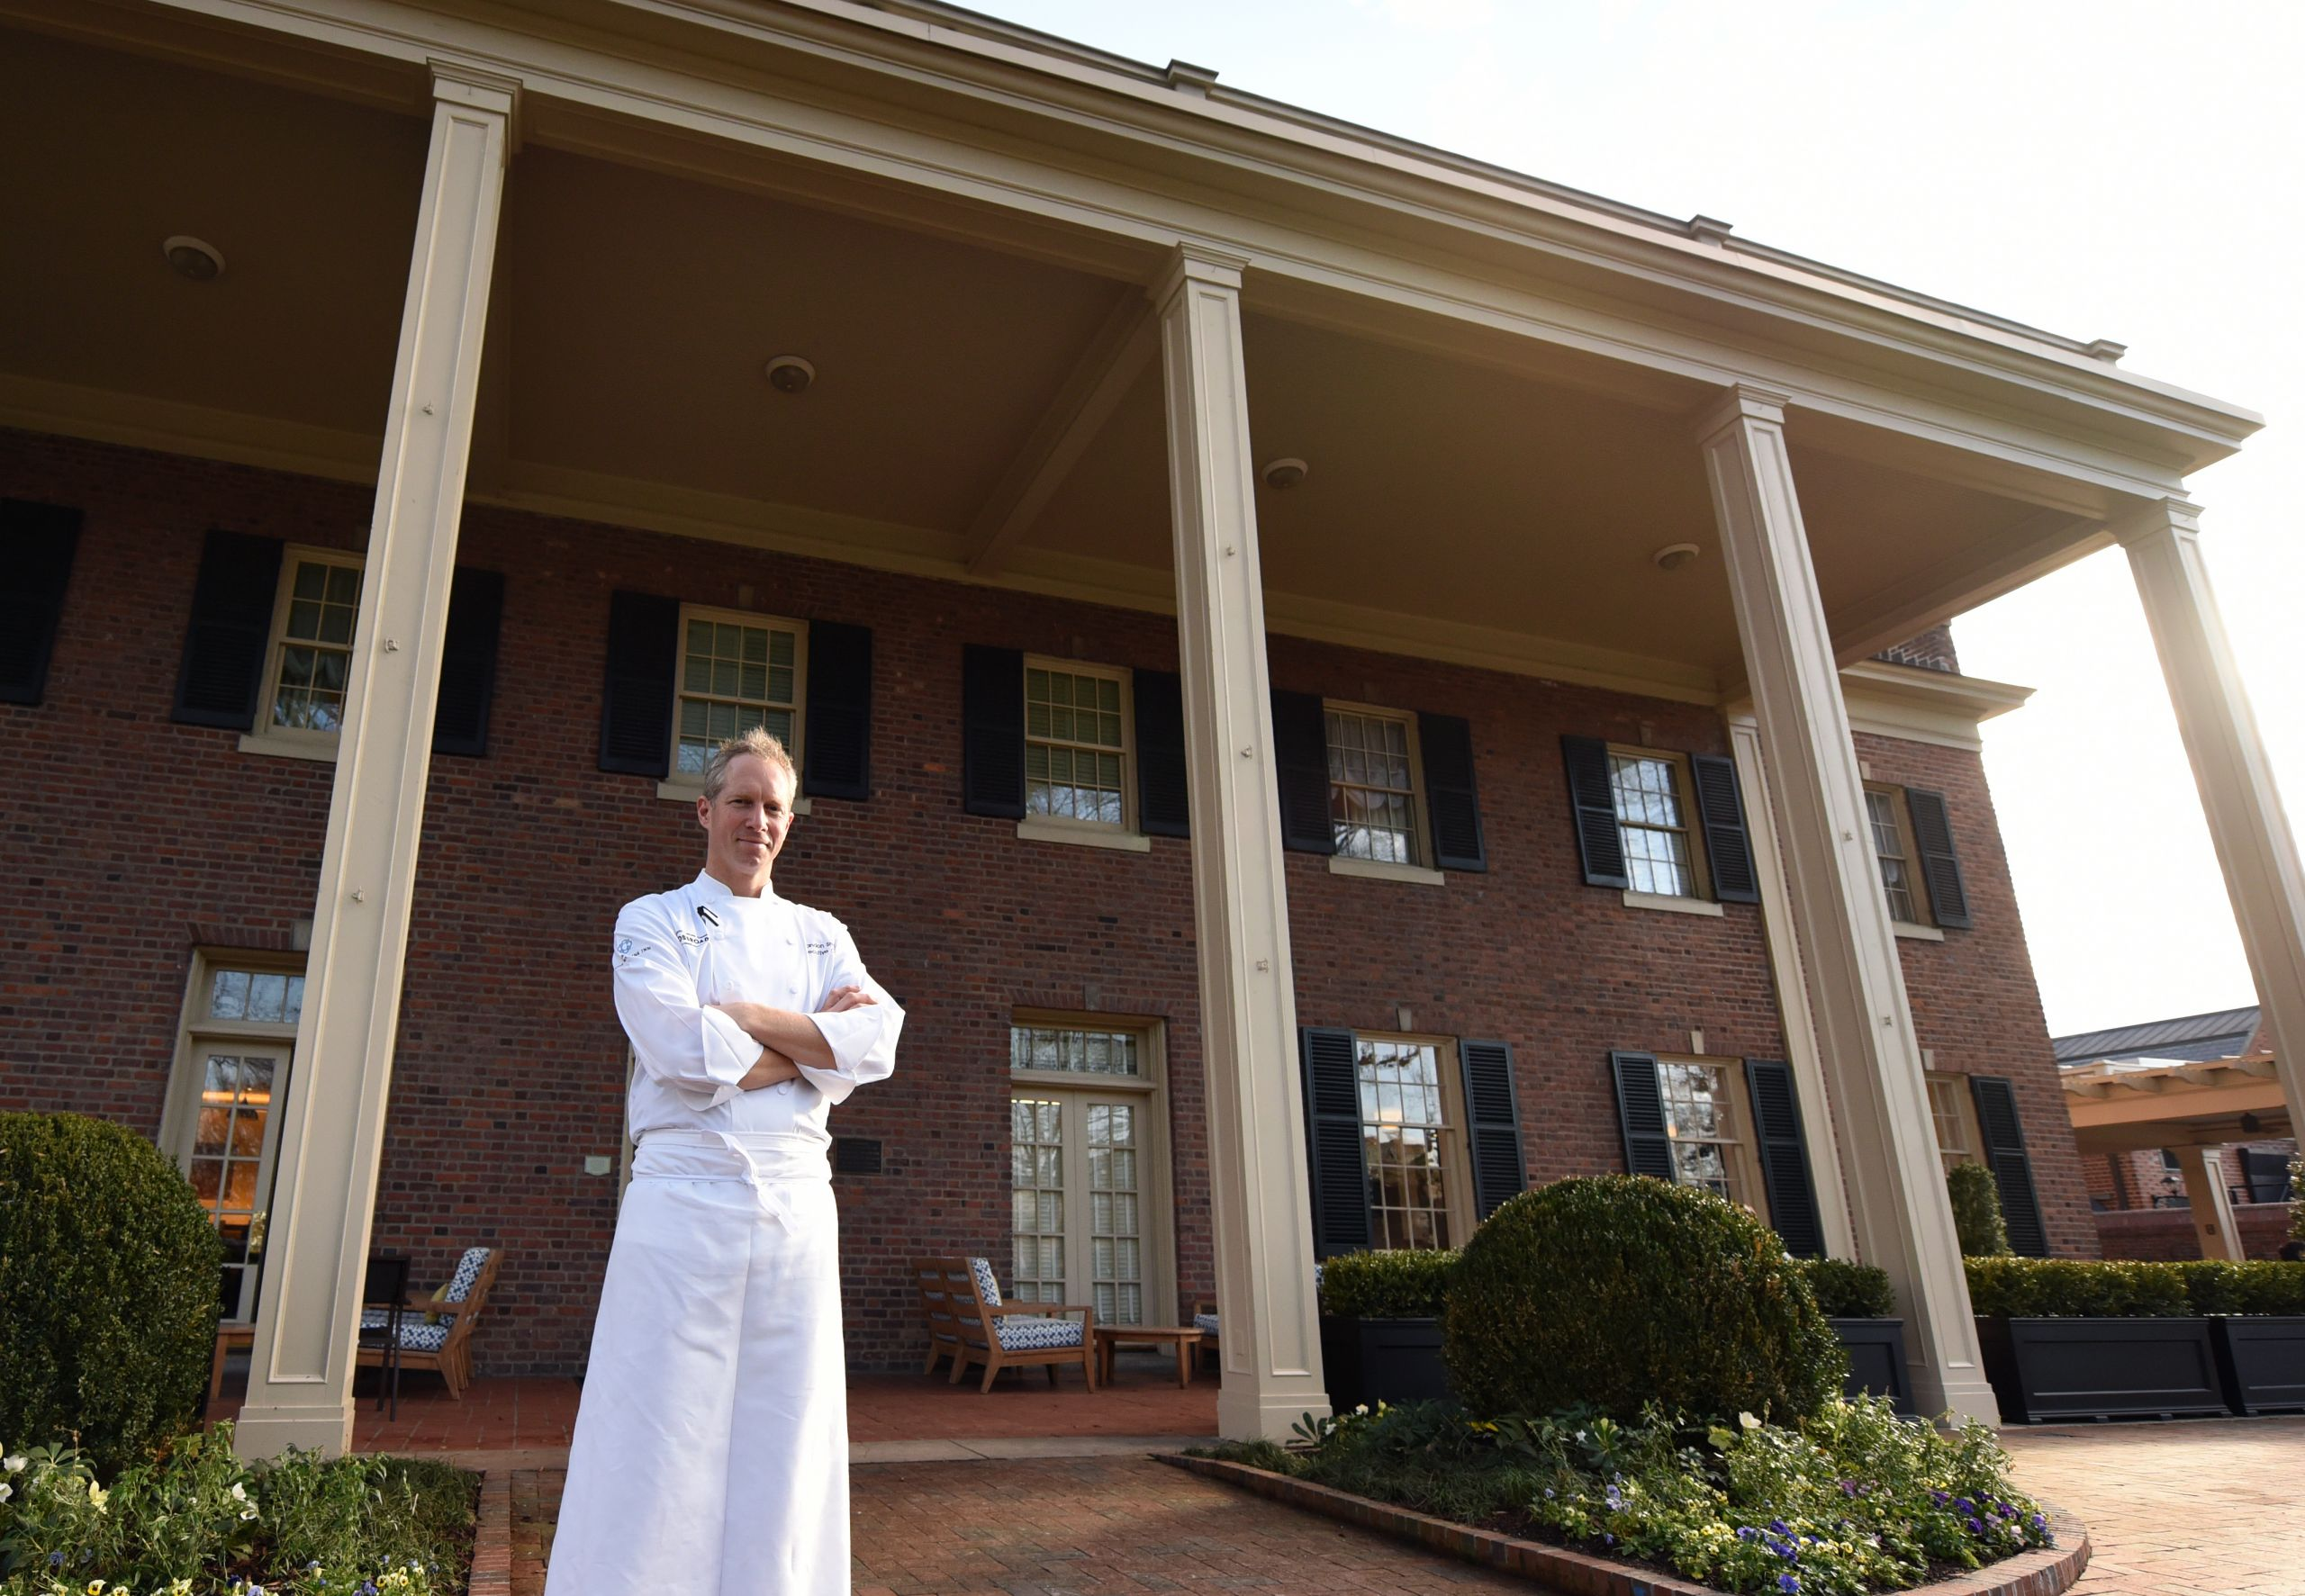 The Carolina Inn Chef Brandon Sharp '97 has gone from busing tables at Chi-Chi's in Greensboro to earning seven consecutive Michelin stars. (Photo by Melanie Busbee '04/UNC)